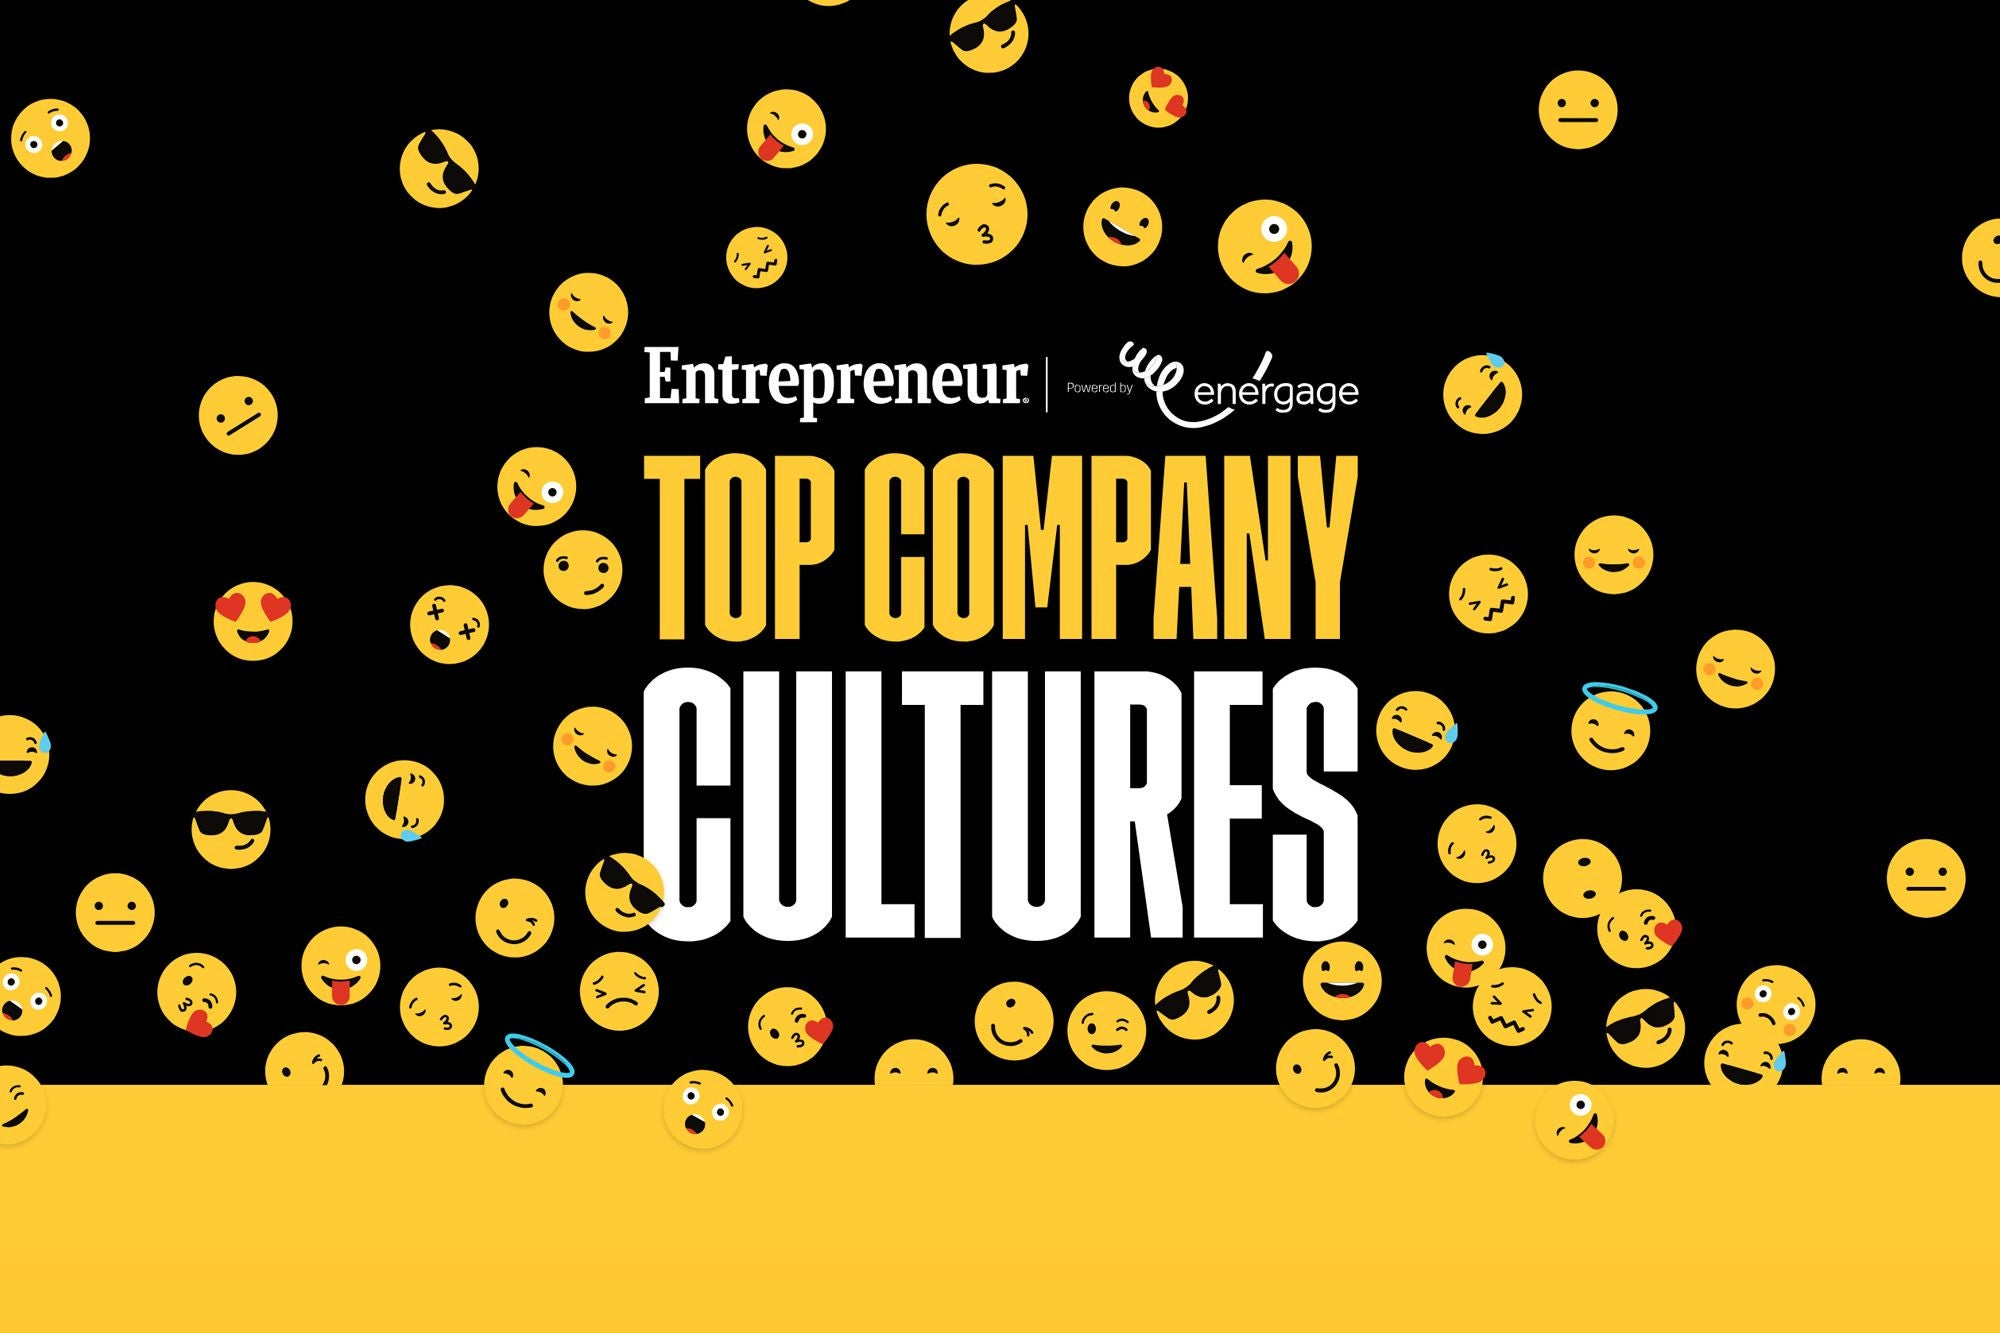 Top Company Cultures of 2018